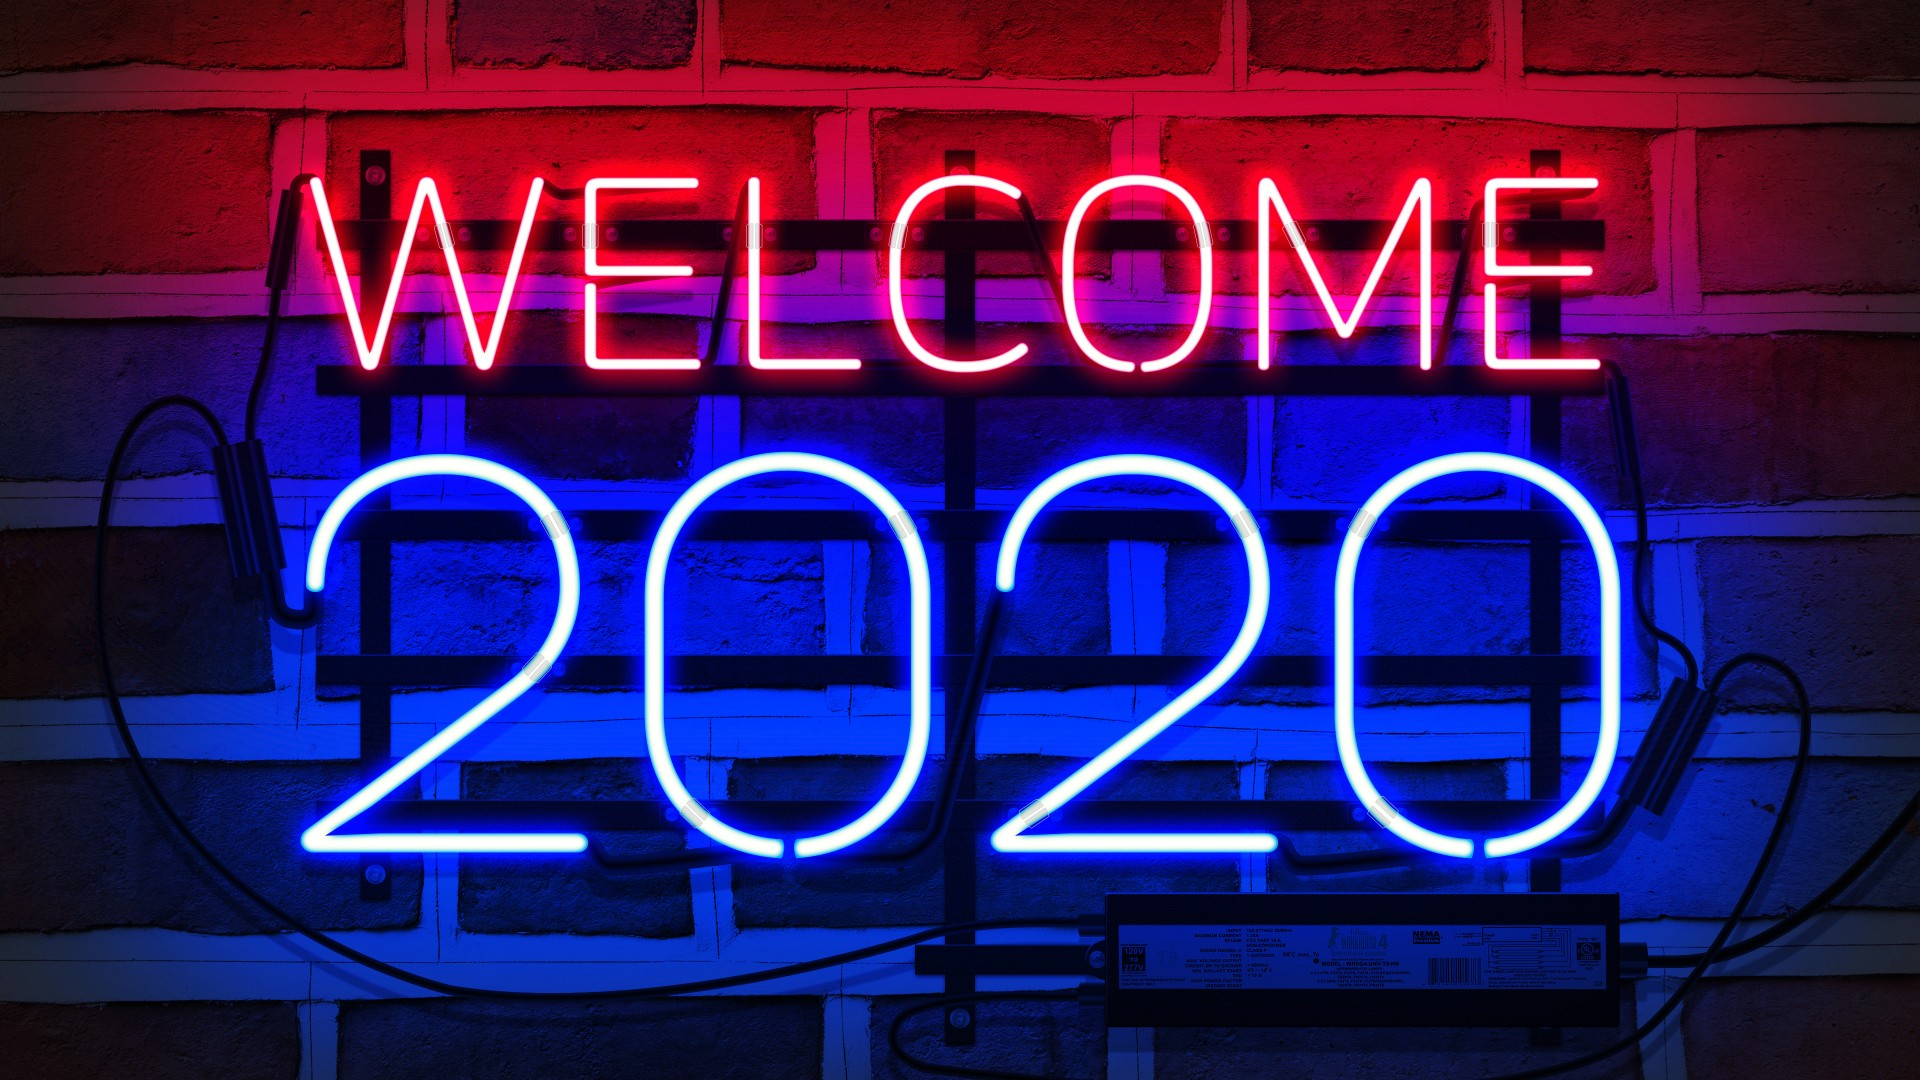 Welcome 2020 New Year Neon Light HD Wallpaper 1920x1080